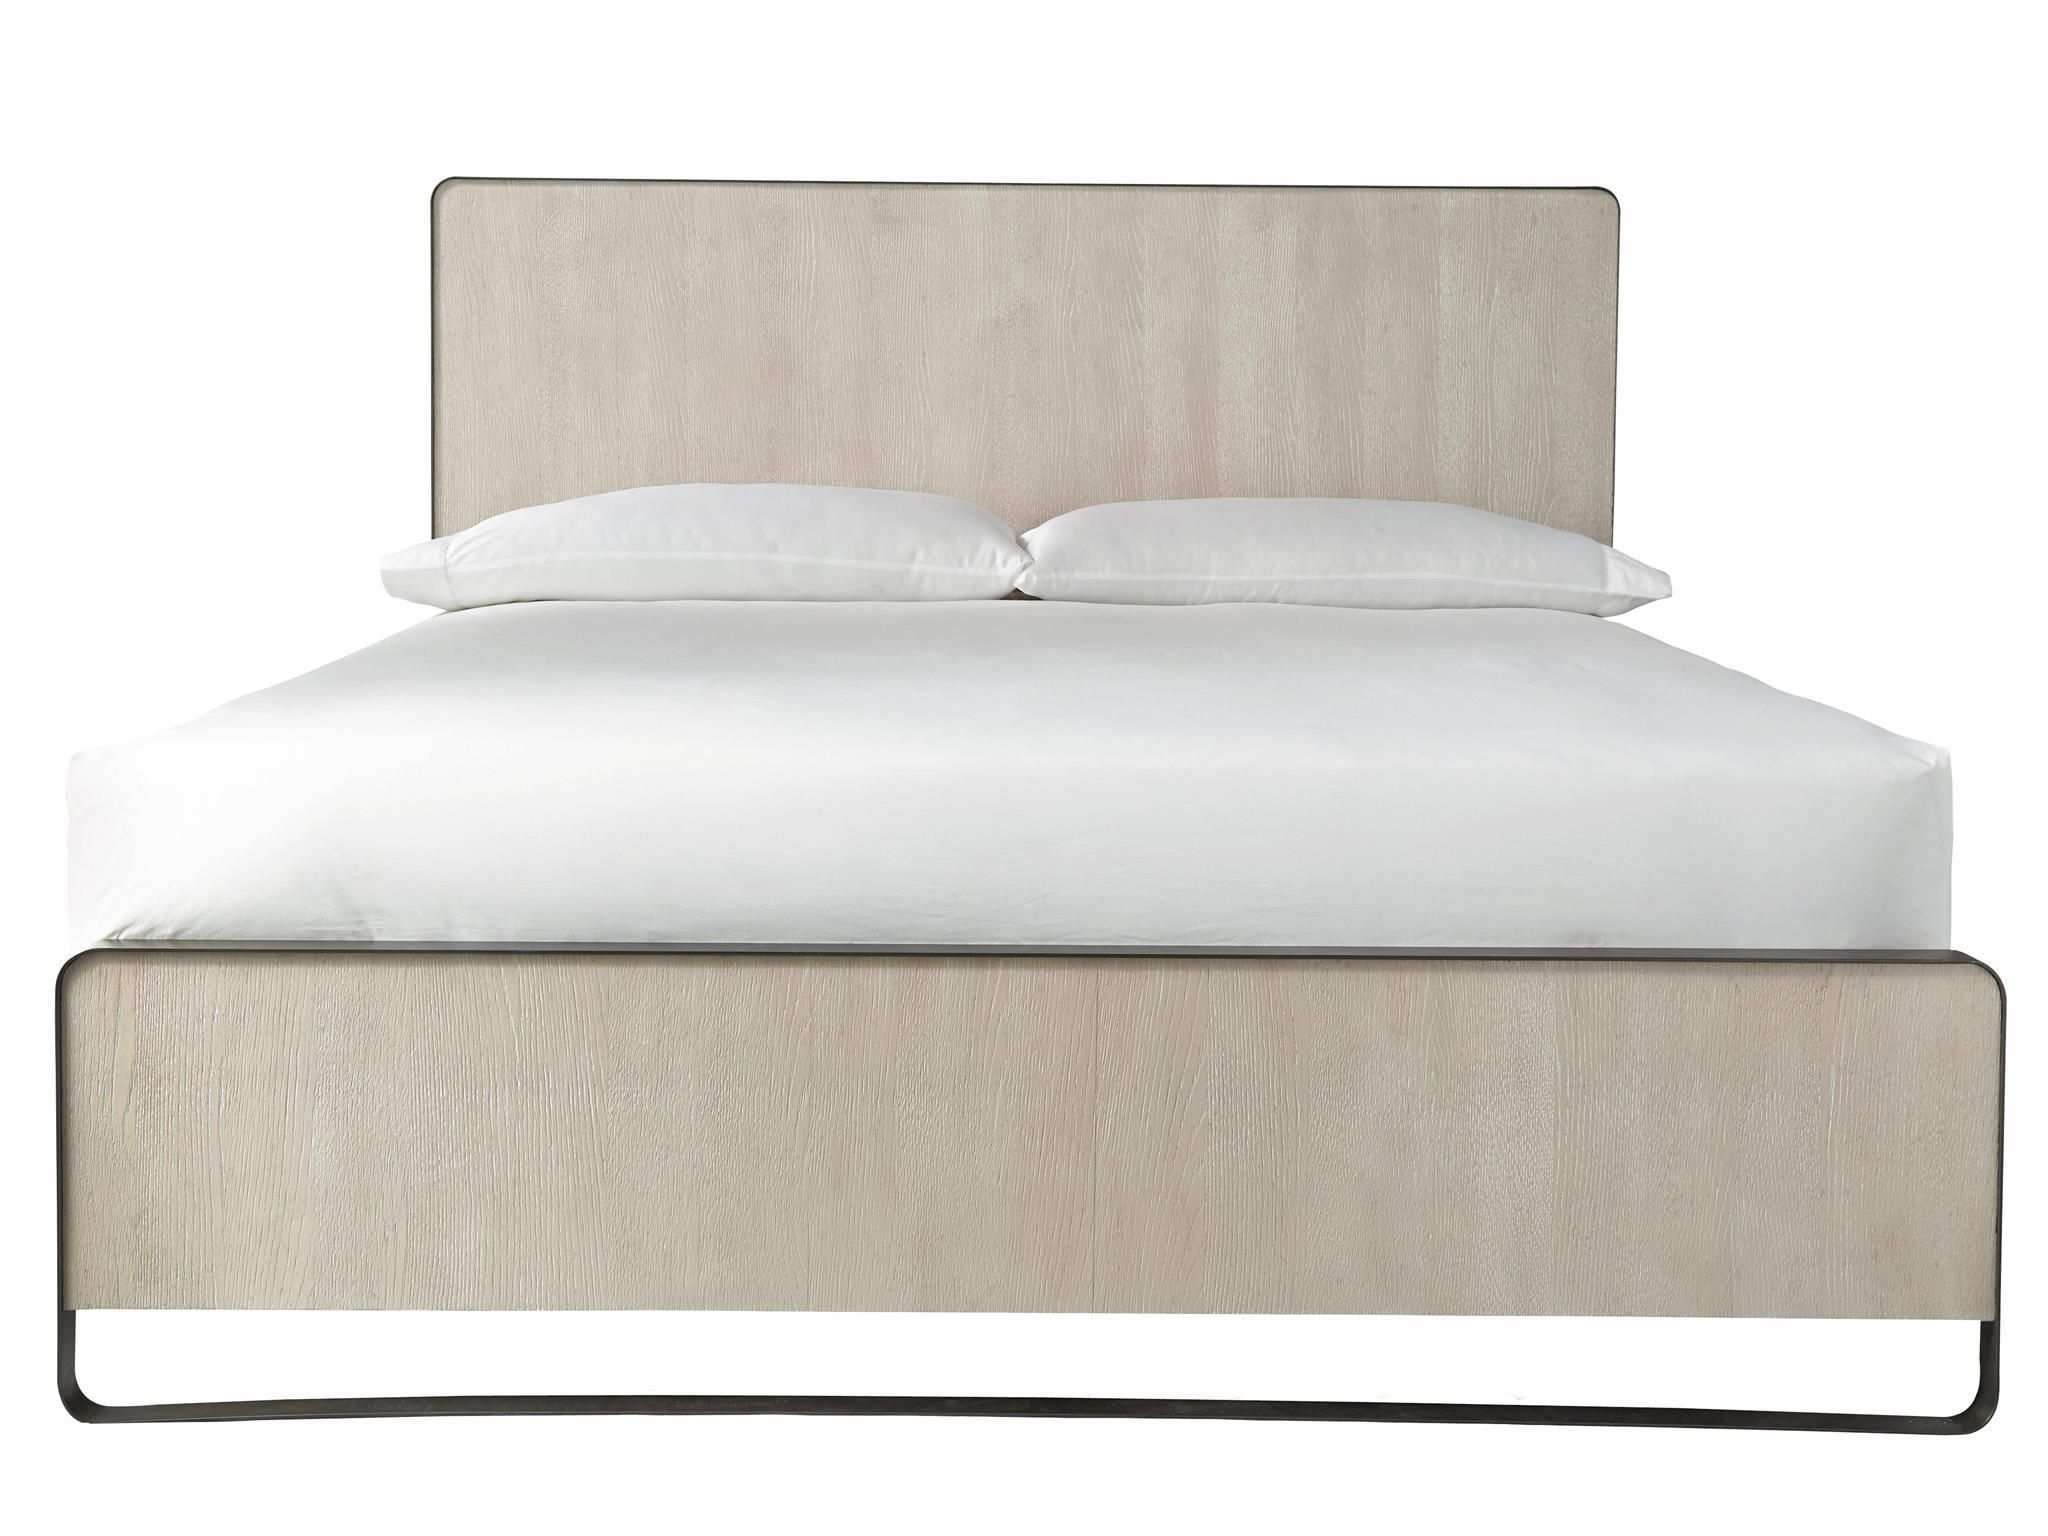 Modern Keaton Bed Quartz Free White Glove Delivery Universal Furniture Bedroom Furniture Showroom Contemporary Bedroom Furniture